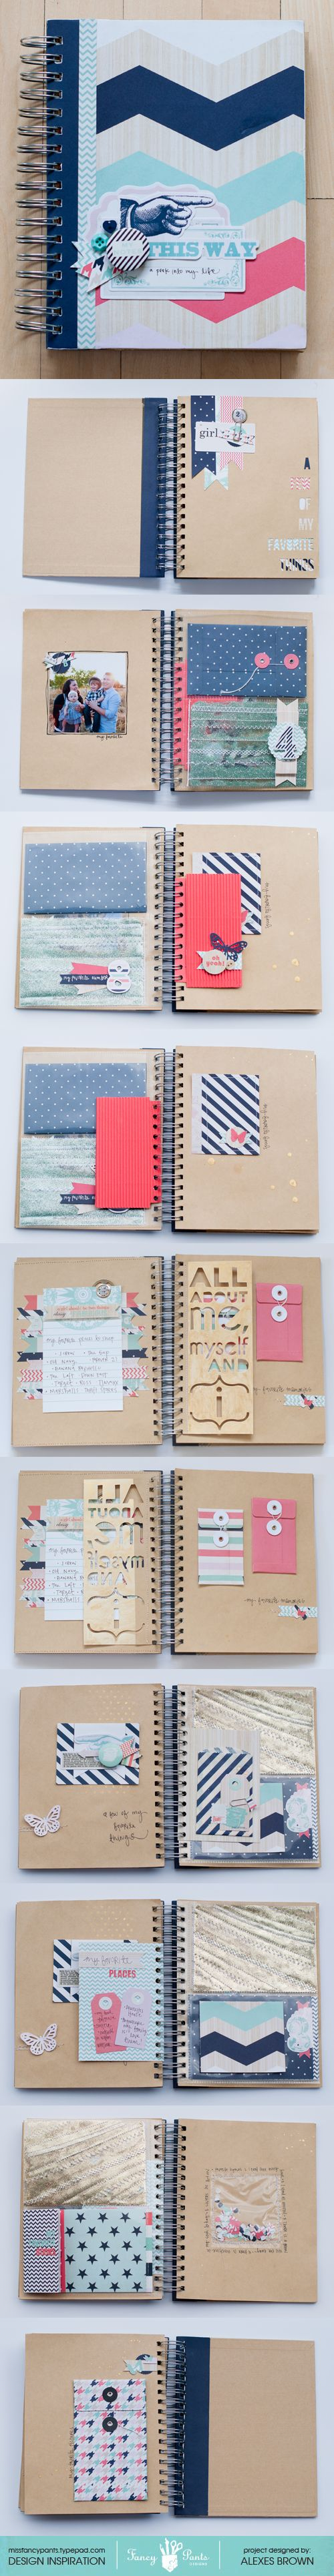 Brag Book by Alexes Brown using the Trendsetter Collection by Fancypantsdesigns.com.  For complete tutorial go to http://missfancypants.typepad.com/little_miss_fancy_pants/2013/04/bragbook-week-here-over-at-fancy-pants-designs-day-4.html